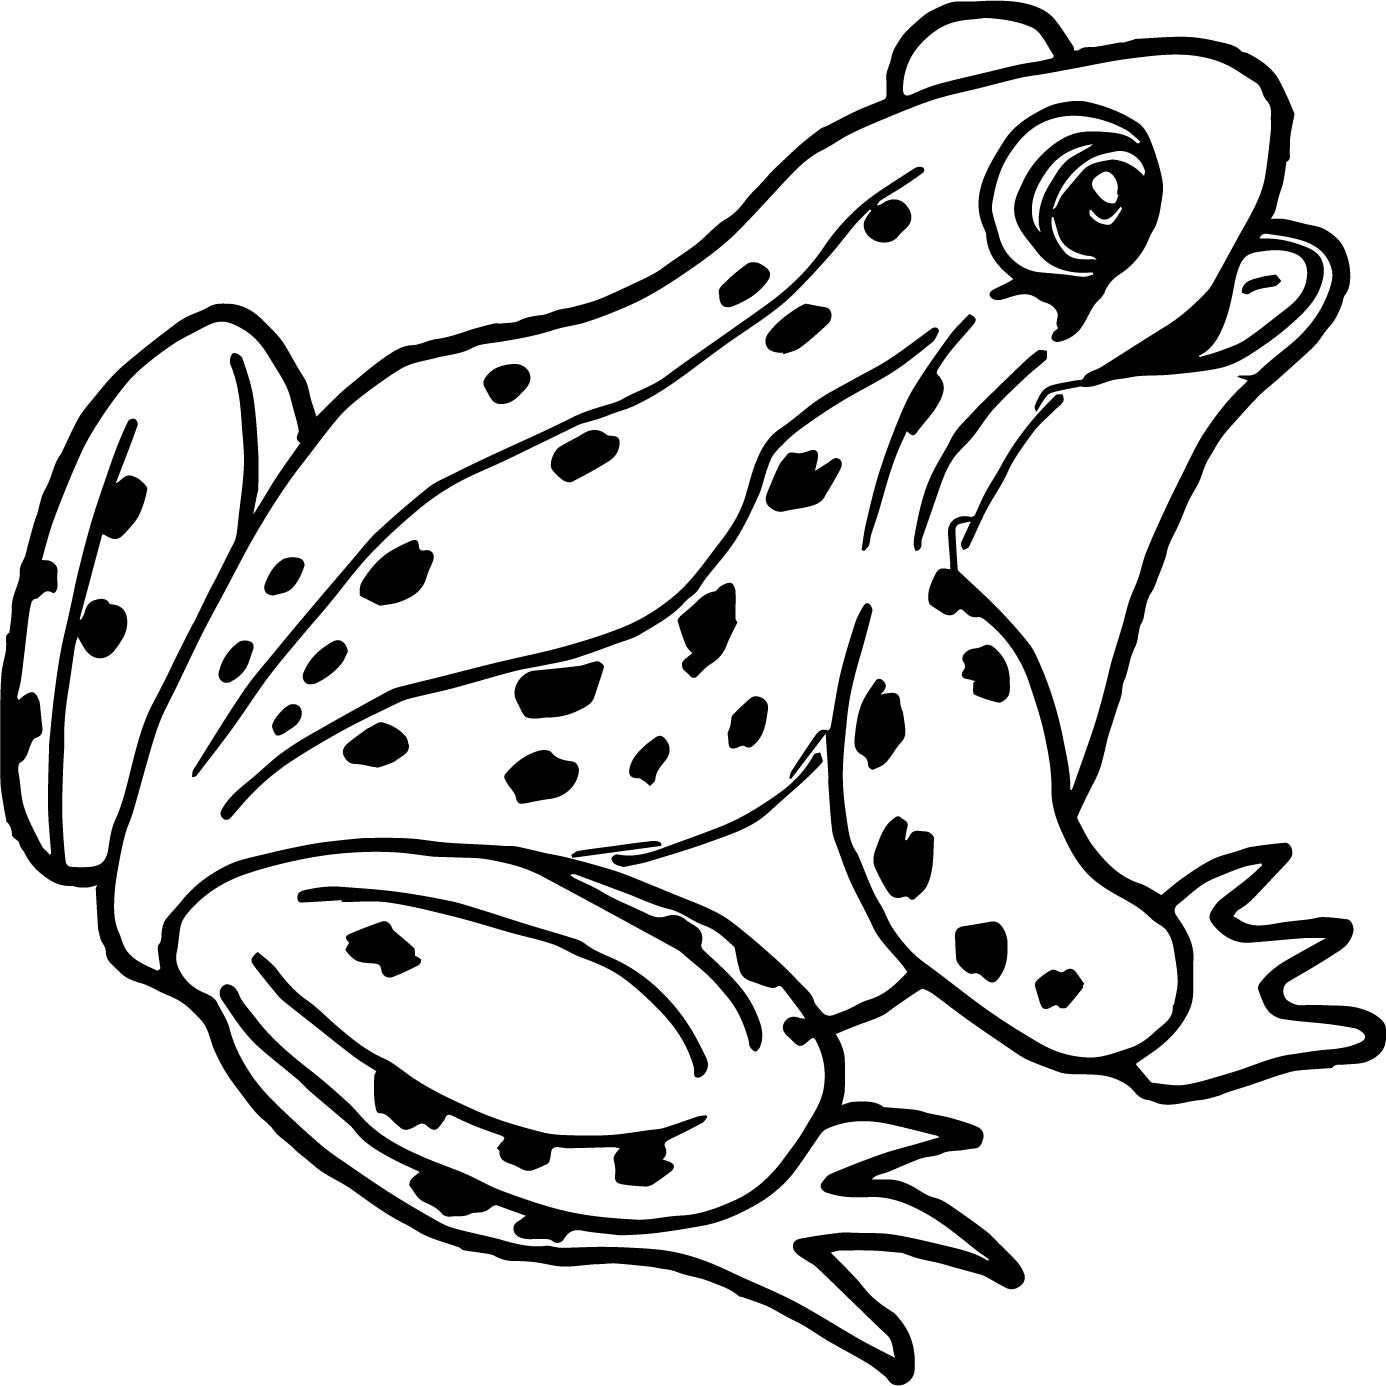 Frog Outline Free download best